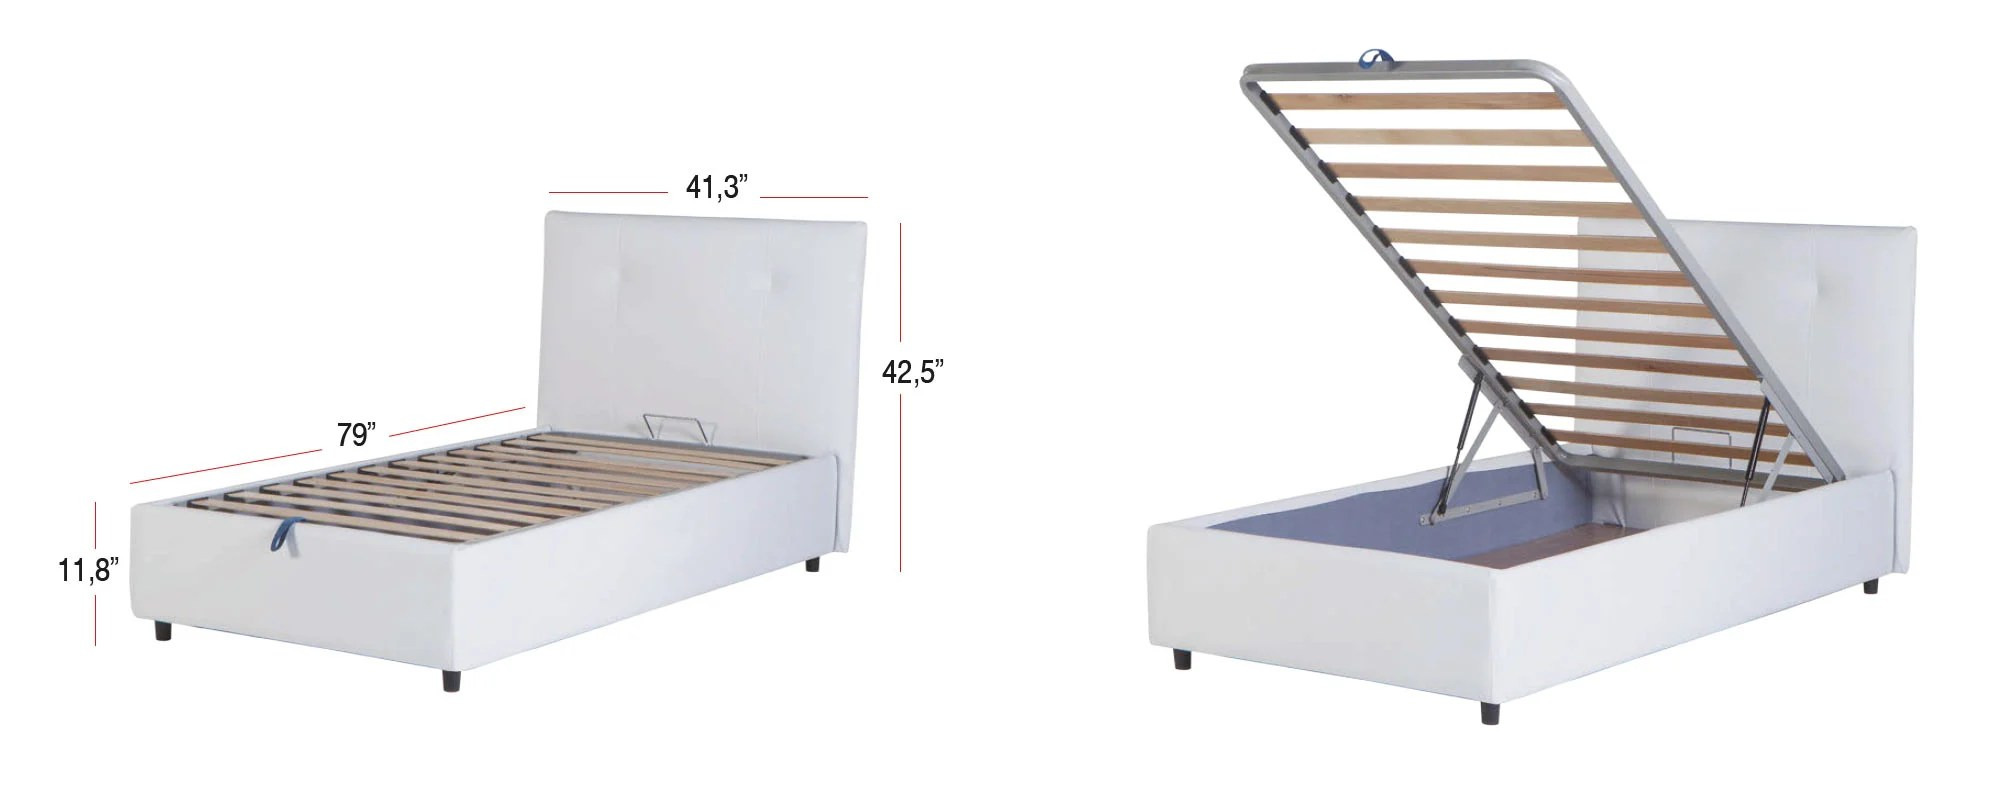 Lift Storage Bed Osaka Lift Up Storage Bed Leather Textile Twin By Sunset